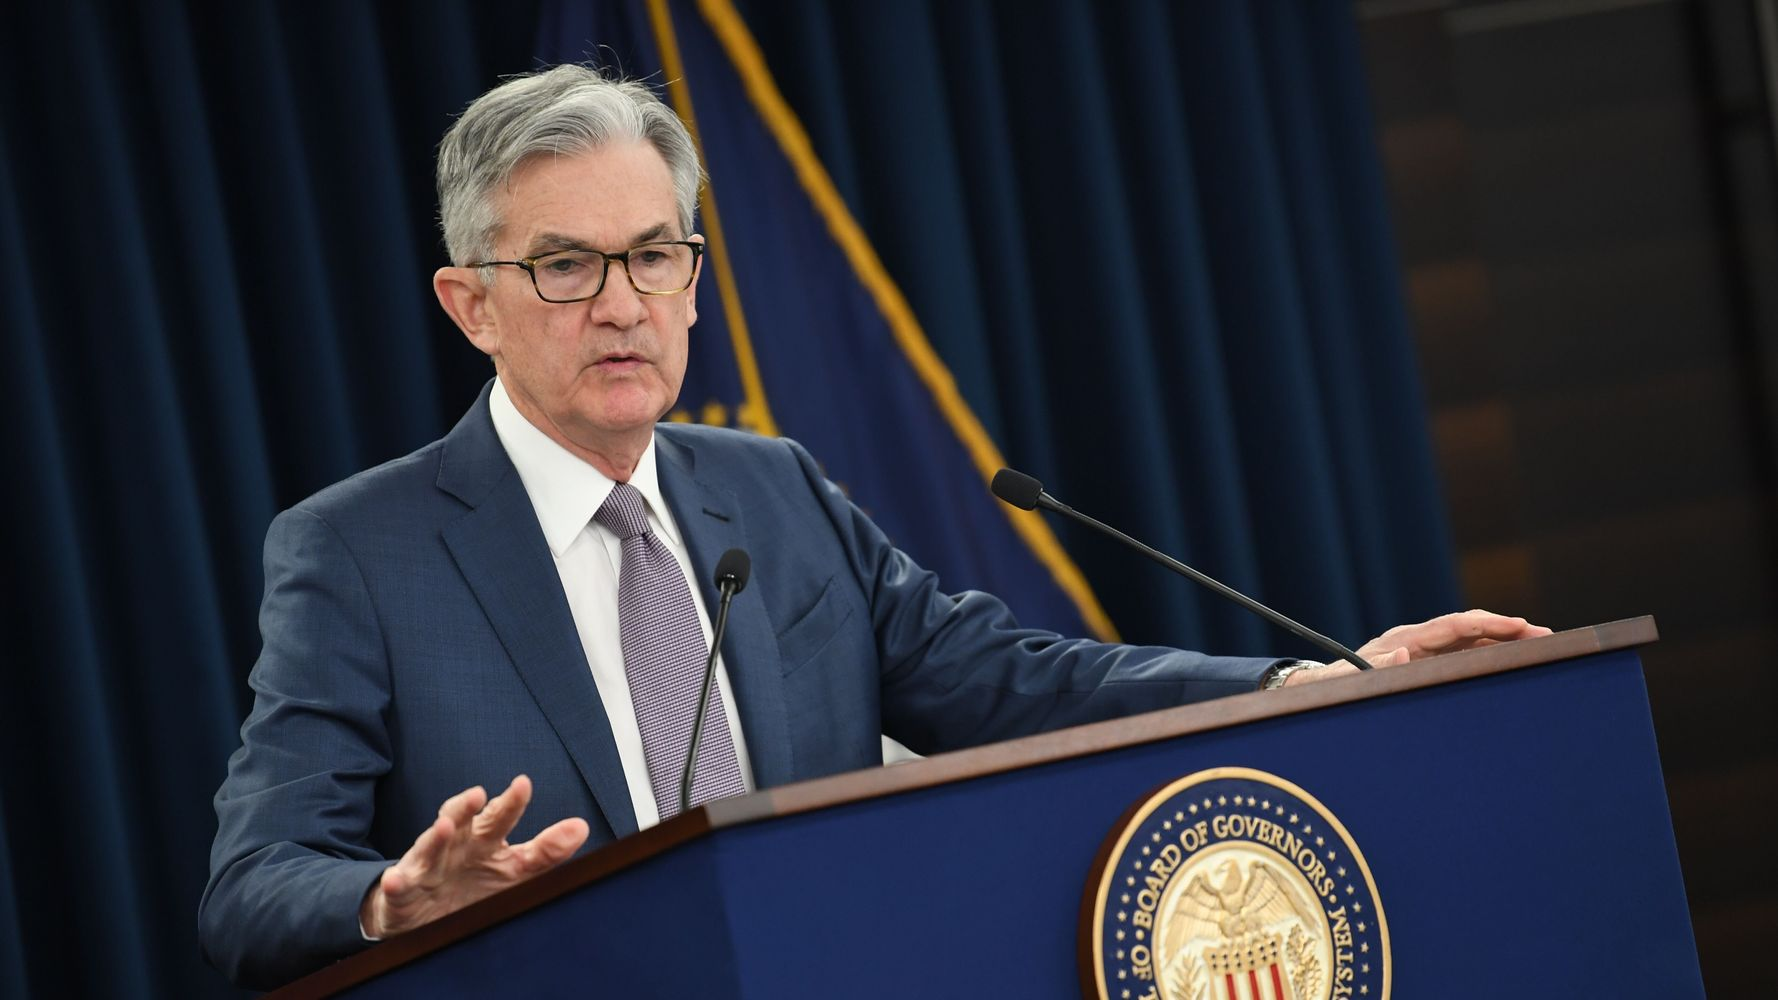 Federal Reserve Chair Contradicts Trump: Curbing Coronavirus Is 'First Order Of Business'